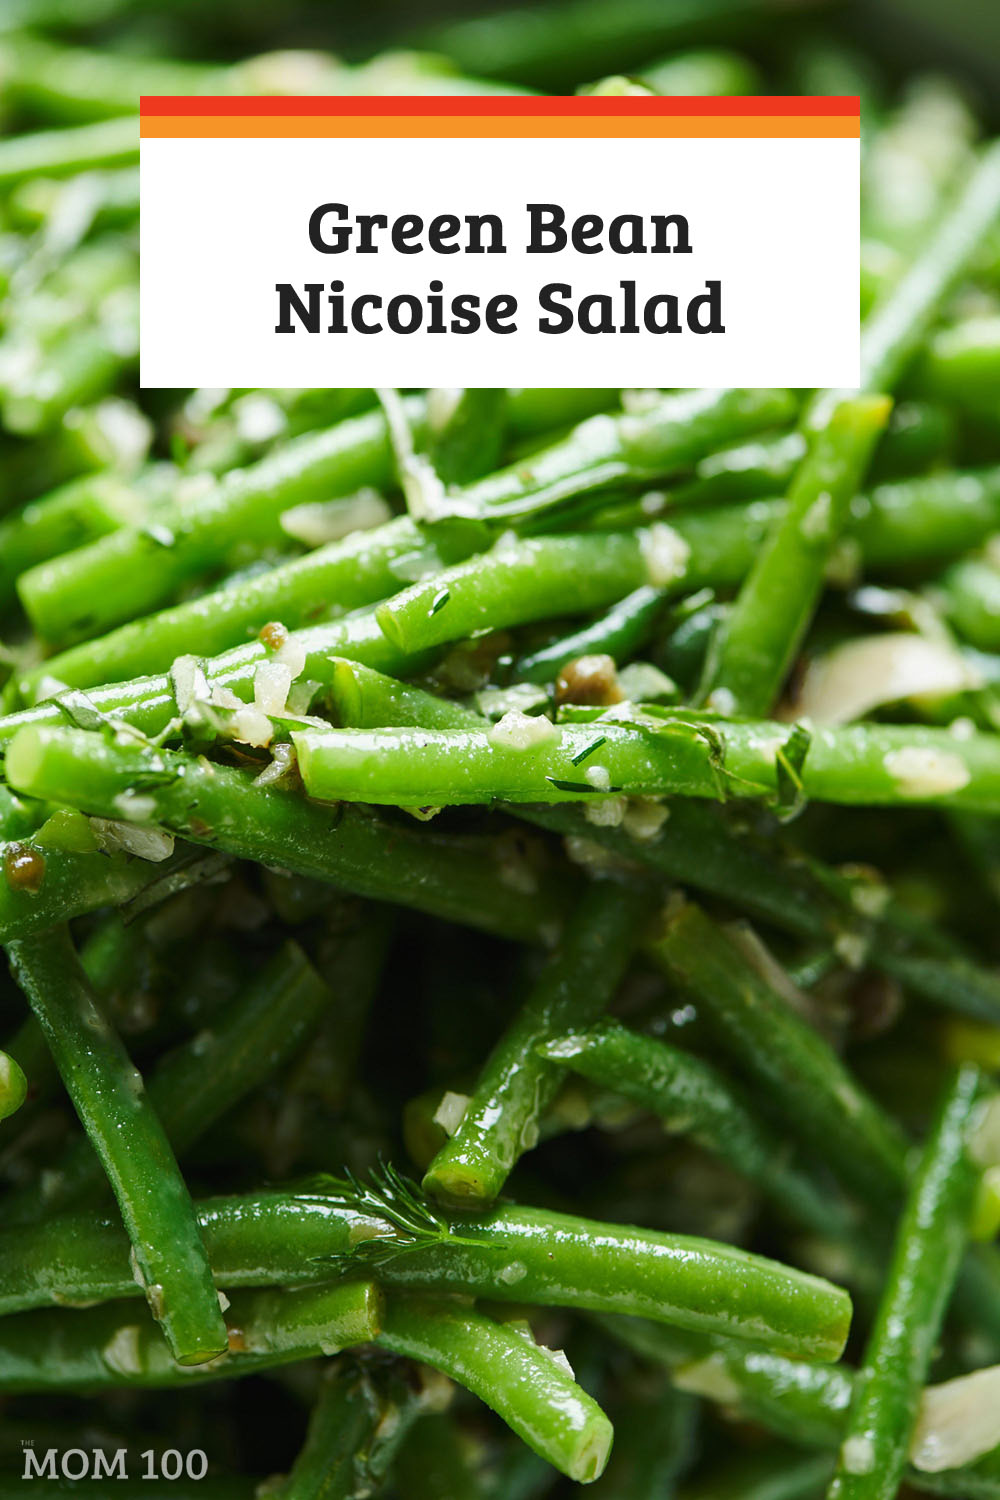 Green Bean Nicoise Salad: Capers, shallots, Dijon, olives, sherry vinegar, fresh herbs -  it's really a vinaigrette on steroids. #greenbeans #haricotverts #sidedish